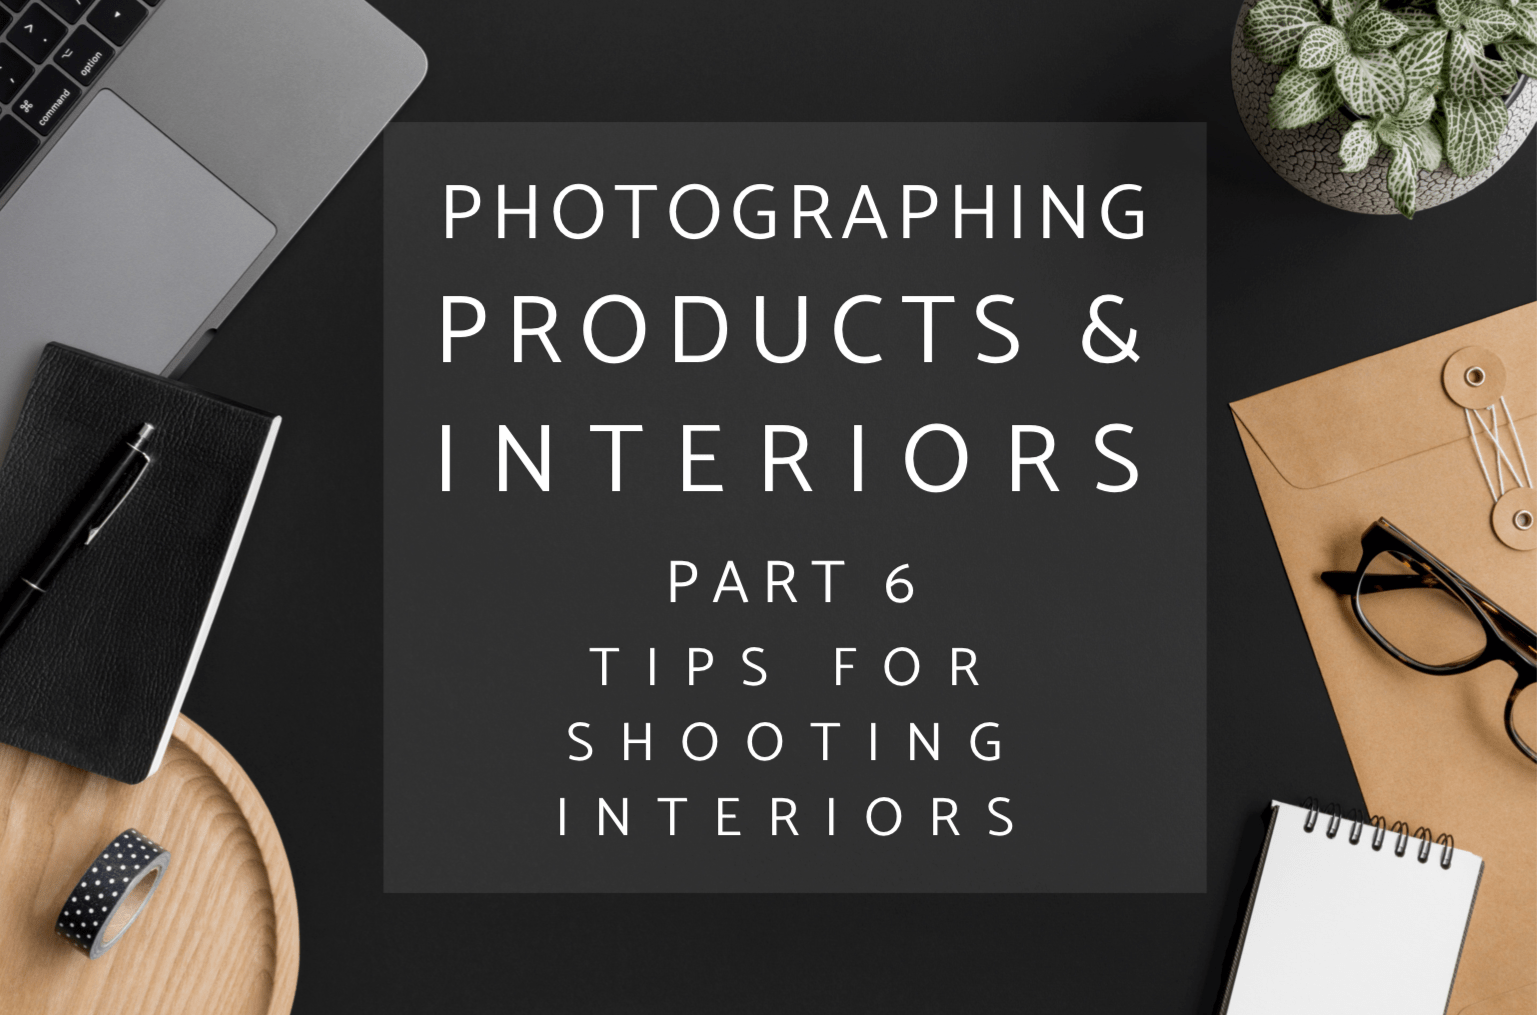 This is part 6 of my Photographing Interiors and Products series and outlines my essential tips for photographing interiors. #interiorphotography #productphotography #photography #blogphotography